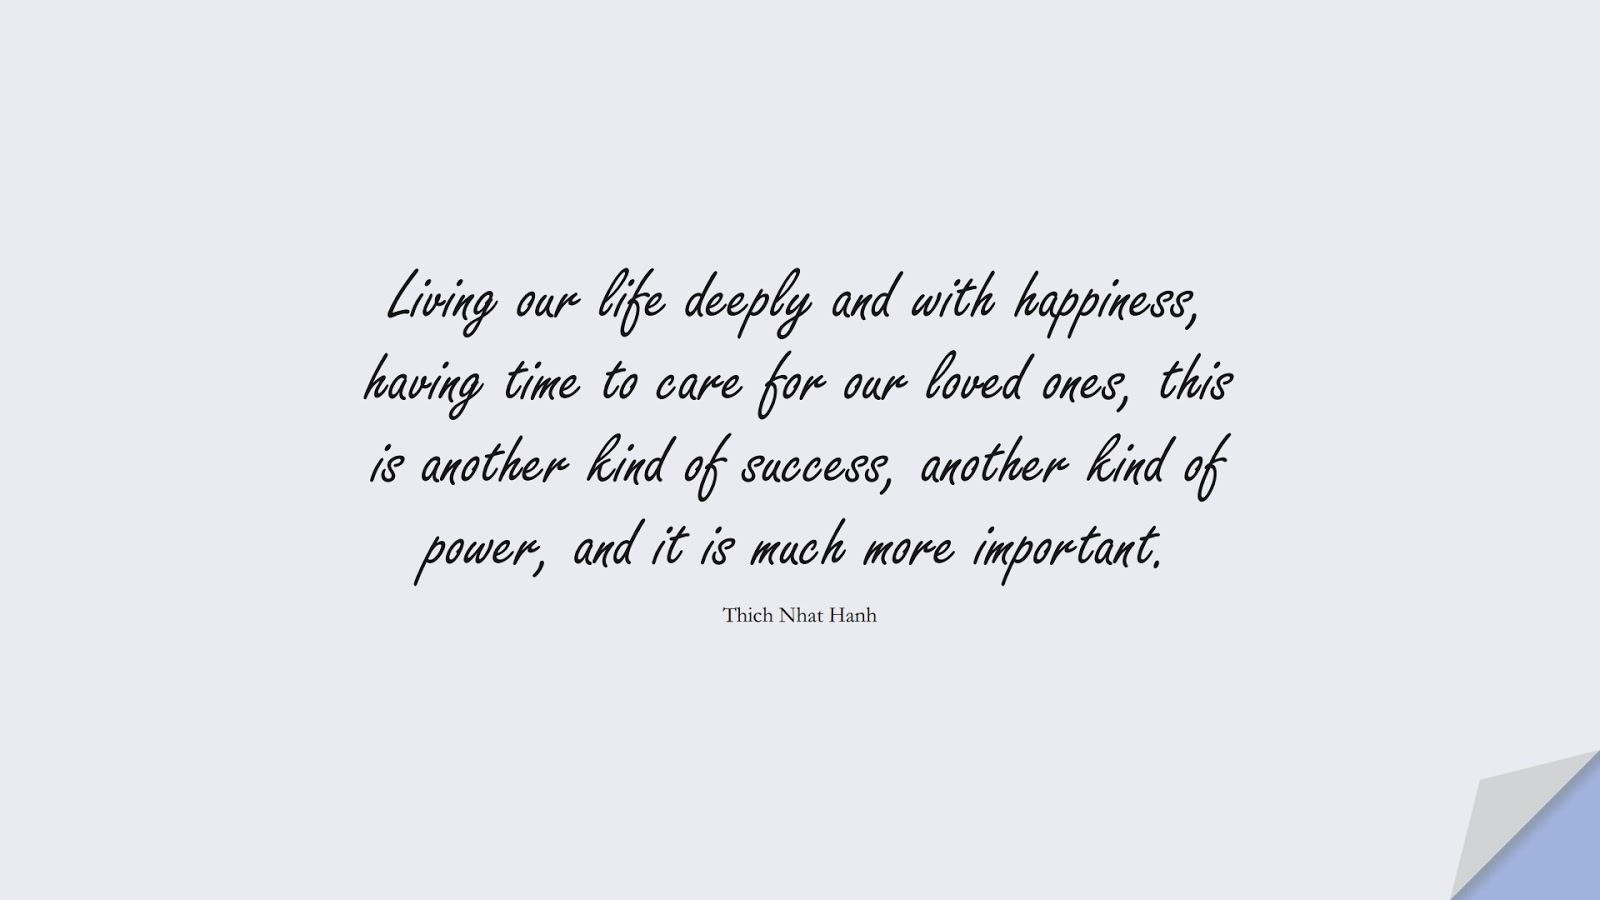 Living our life deeply and with happiness, having time to care for our loved ones, this is another kind of success, another kind of power, and it is much more important. (Thich Nhat Hanh);  #HappinessQuotes